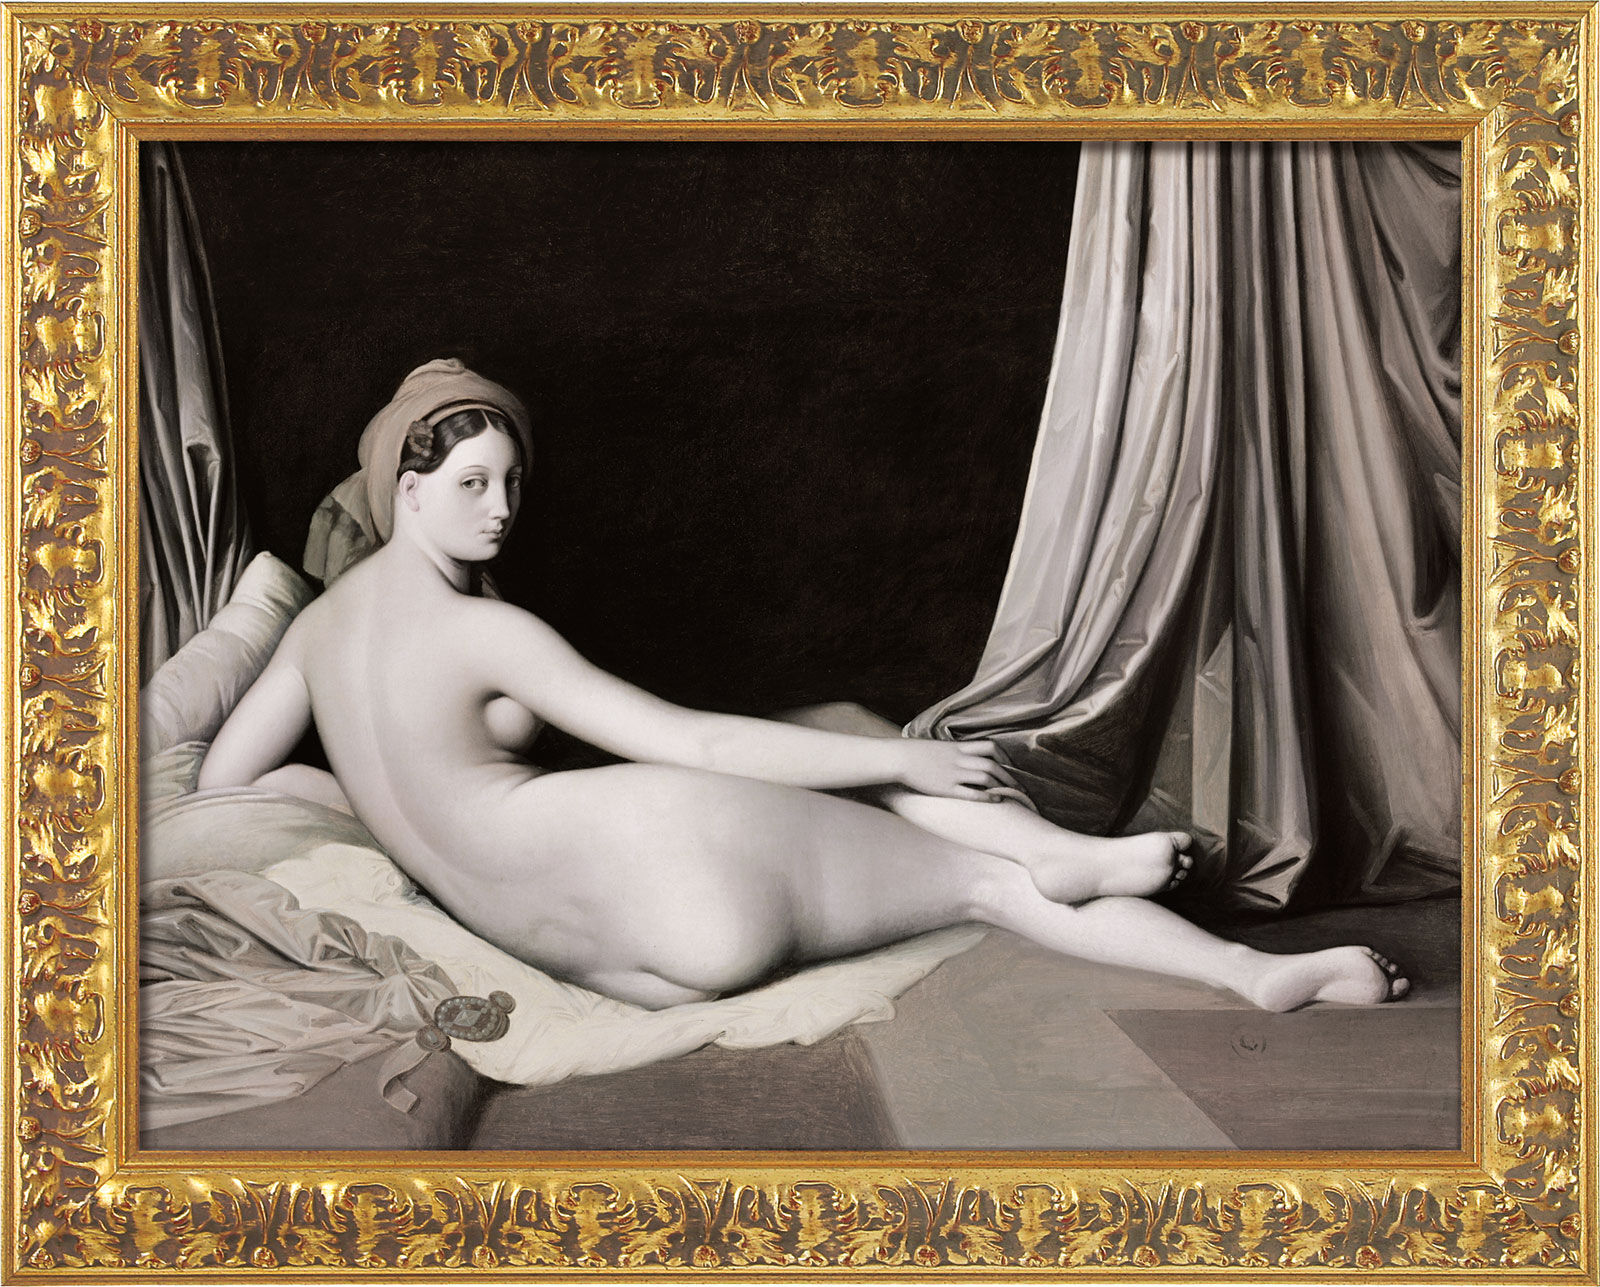 Painting 'Odalisque in Grisaille', 1824-34